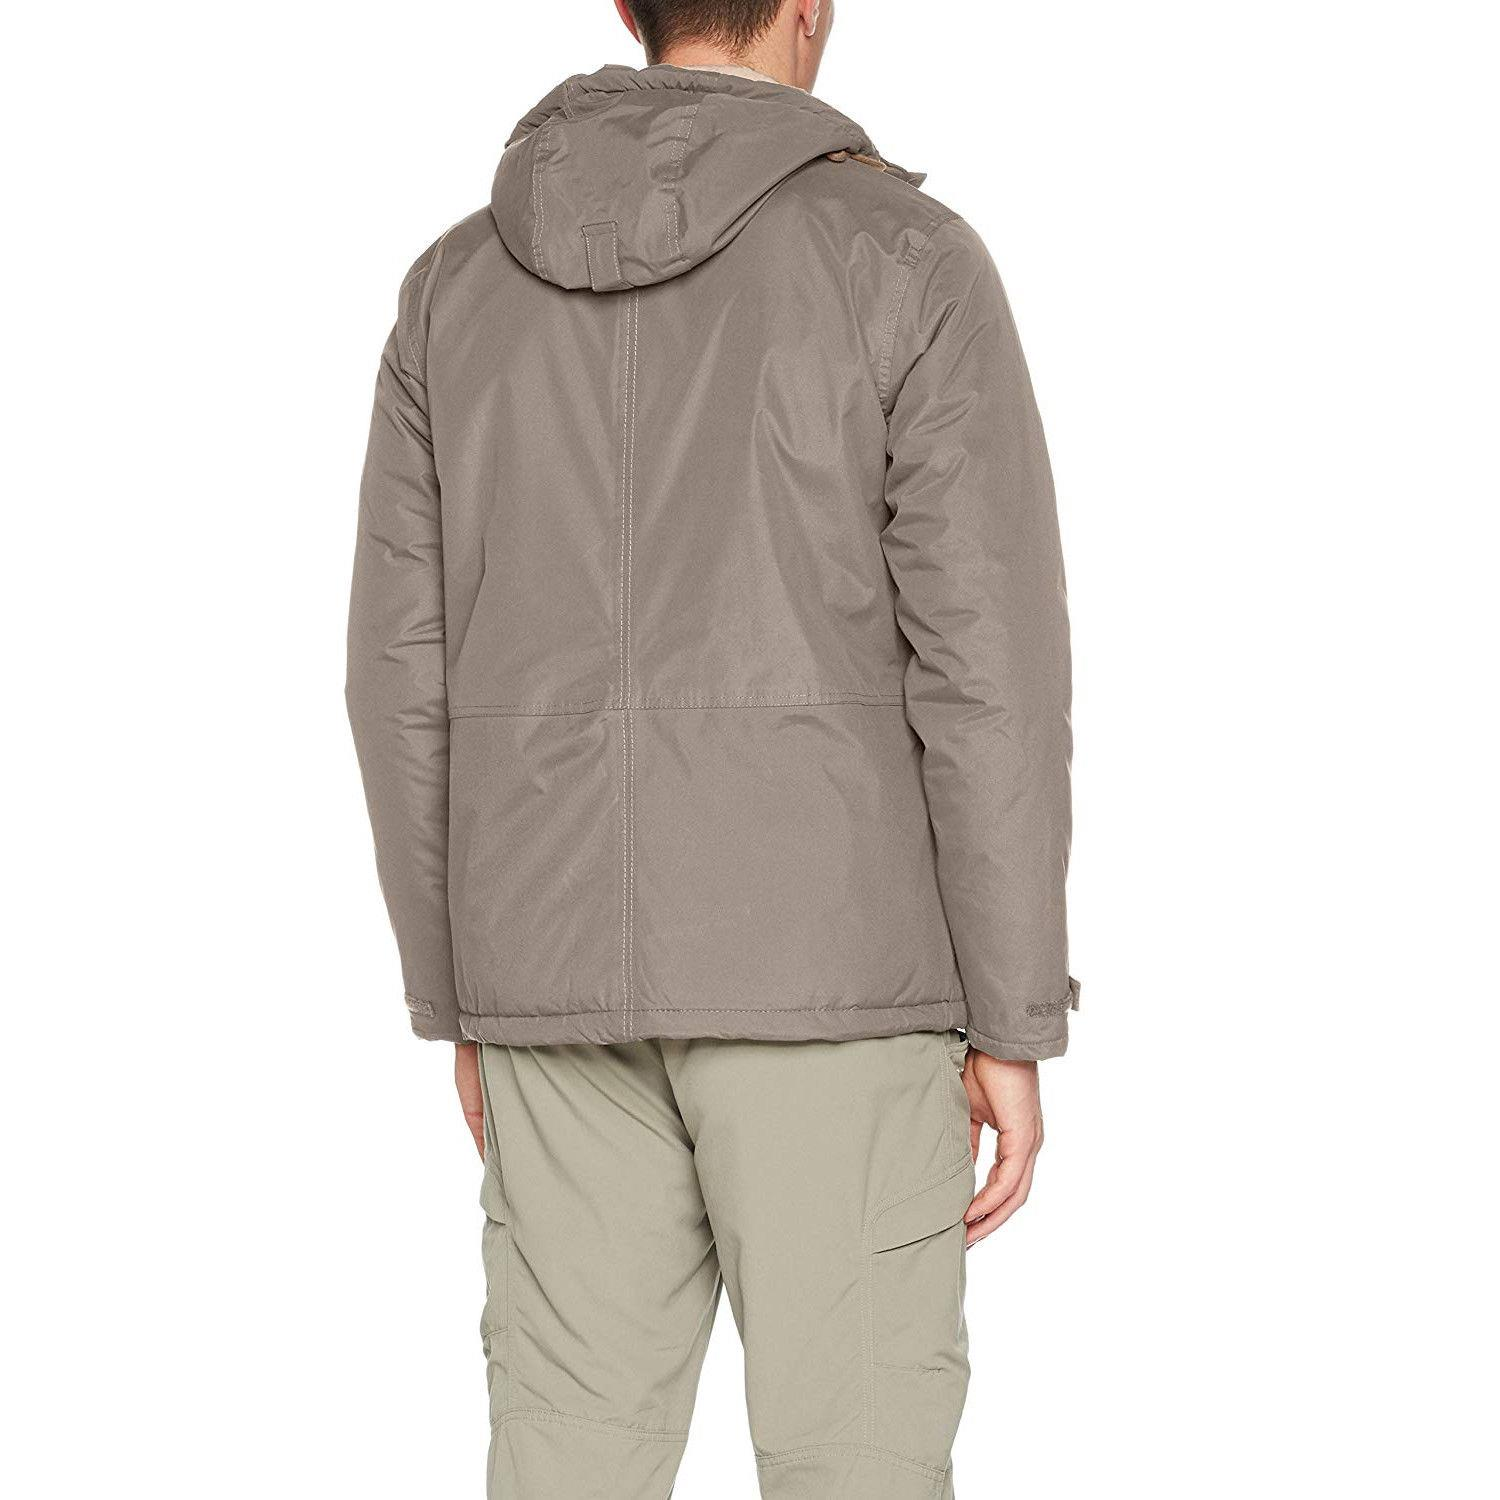 Regatta-Mens-Sternway-II-Waterproof-Hydrafort-Durable-Walking-Jacket-RRP-90 thumbnail 7